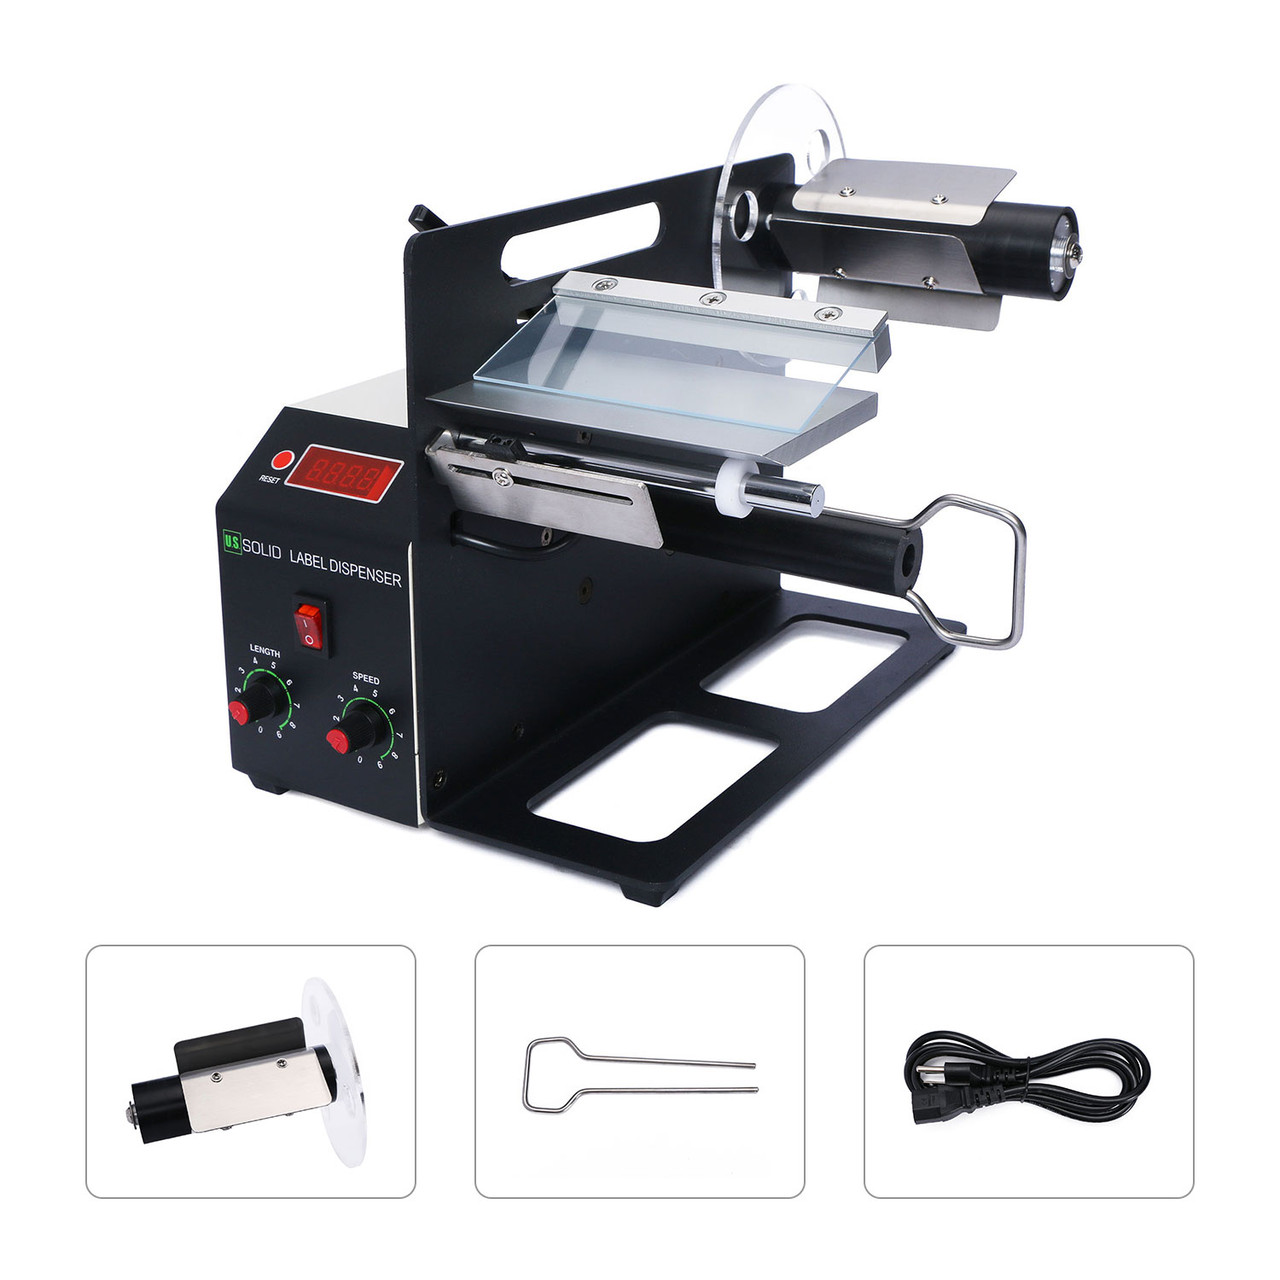 U.S. Solid Automatic Label Dispenser for 4-160 MM Width, 4-200 MM Length Translucent and Opaque Labels